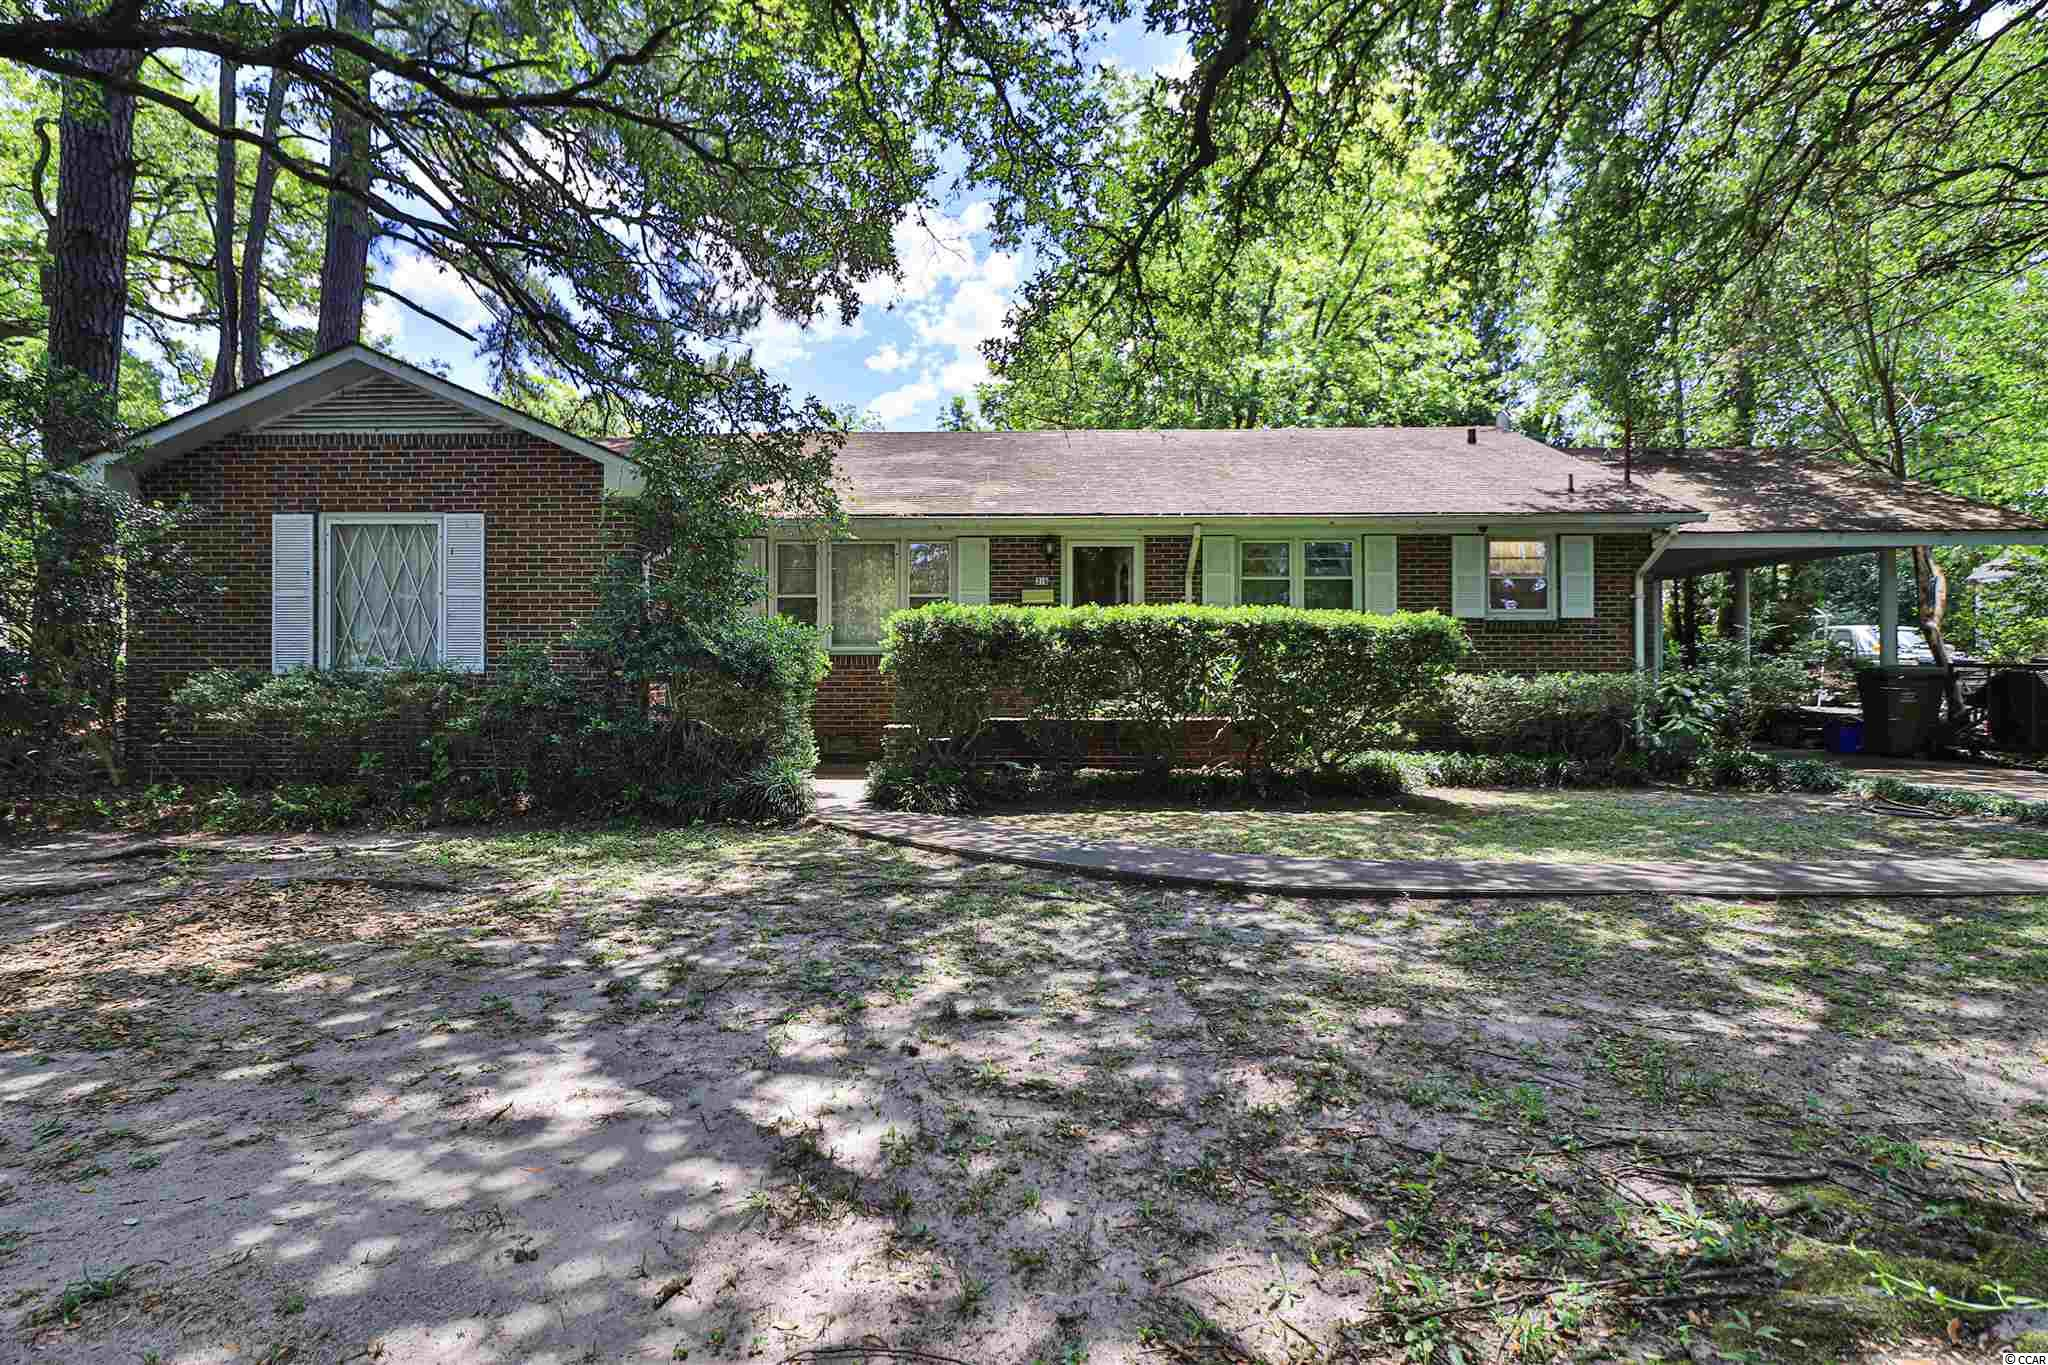 """This is the quintessential brick ranch on the corner lot that you've been looking for! It's perfect for a primary, secondary, or investment property. This large 3 bedroom, 2 bathroom home is ready for a little elbow grease and TLC. It's close to historic Georgetown riverfront, local shops, and grocery stores. Home is being sold """"as is"""""""